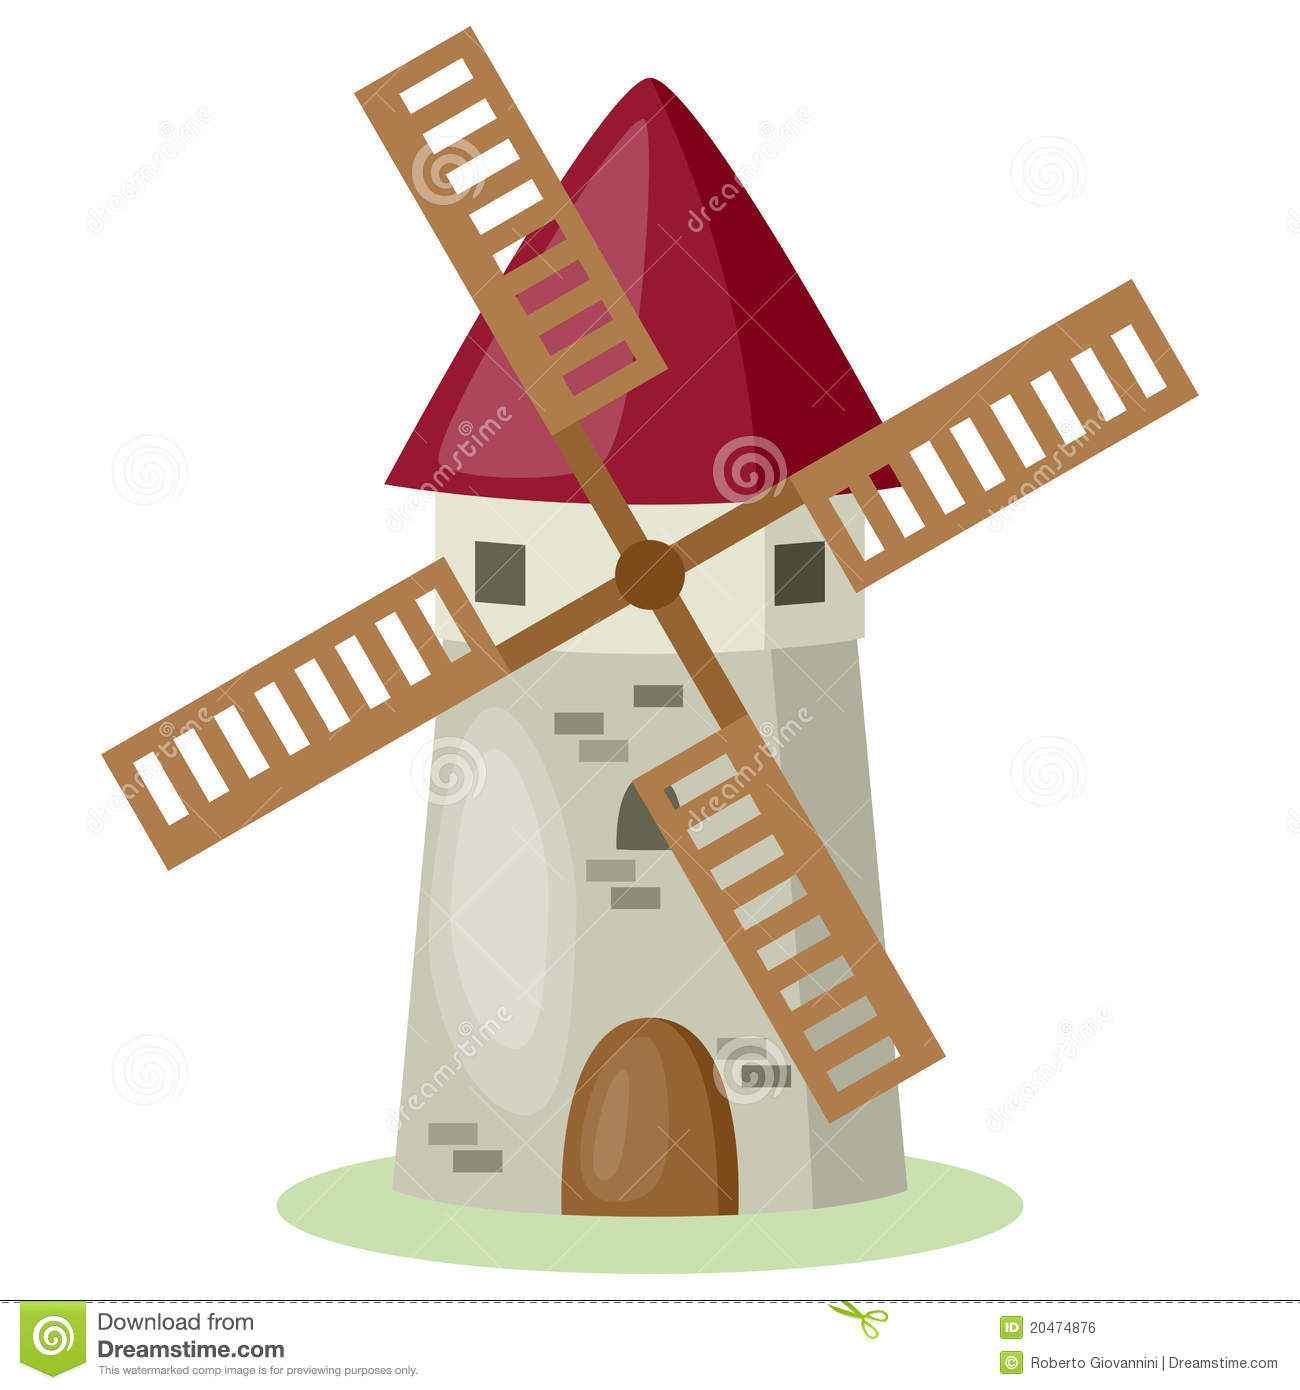 Cartoon windmill isolated on white background. Eps file available.